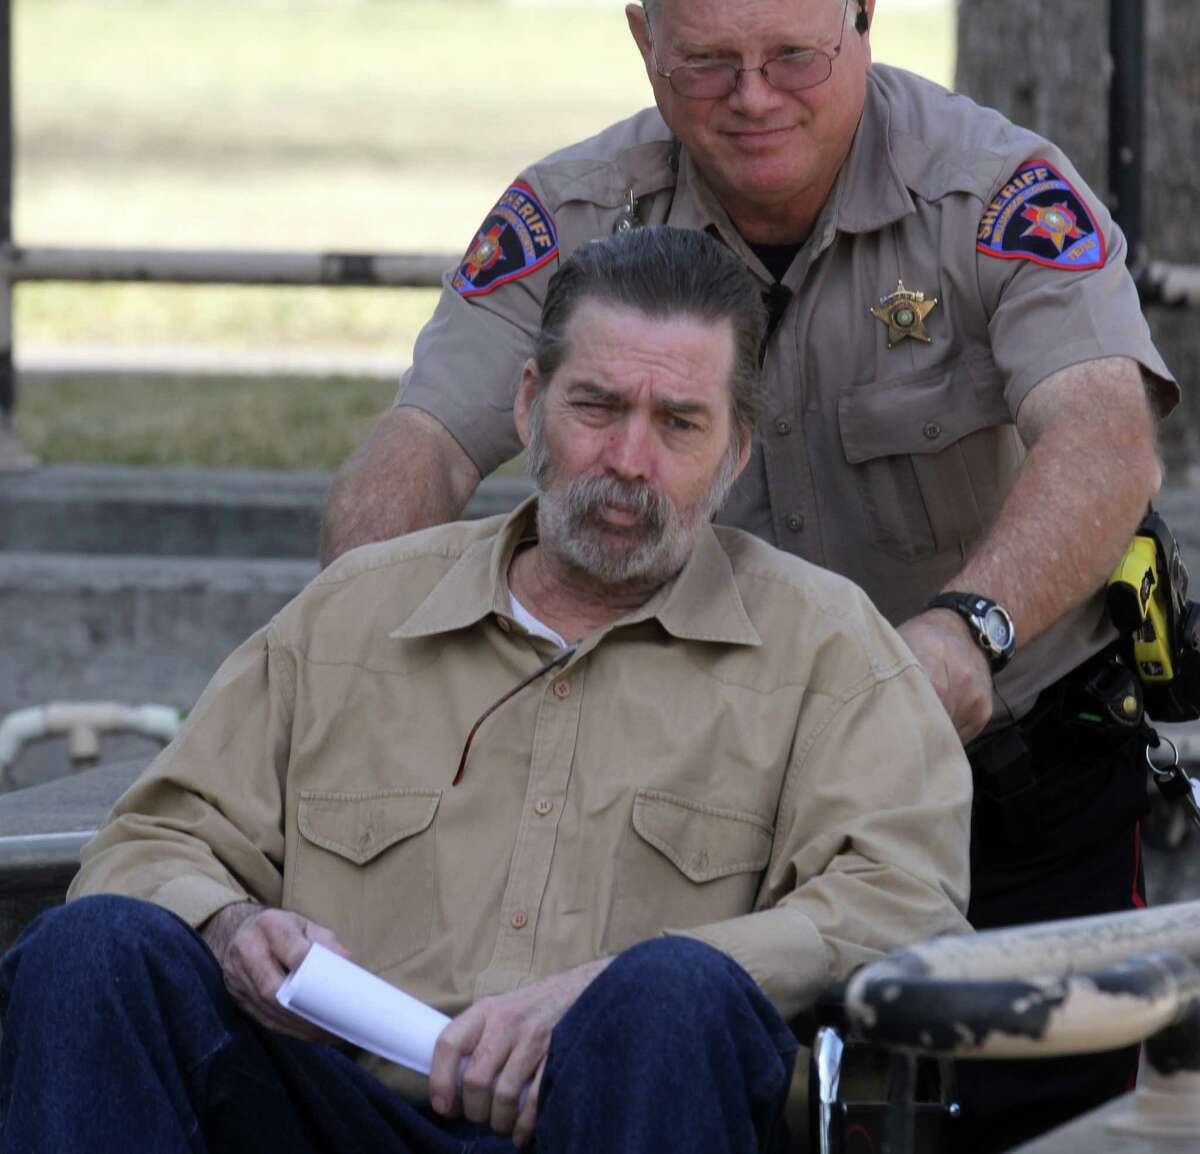 Mark Norwwod is taken out of the Tom Green County Courthouse in San Angelo, Texas, Wednesday, March 27, 2013 after being found guilty of the 1986 murder of Christine Morton. Norwood was sentenced to life in prison. Morton's husband, Michael Morton, was originally convicted of the crime and spent 25 years in prison before DNA evidence exonerated him in 2011. The same evidence implicated Norwood in the murder. (AP Photo/San Angelo Standard-Times, Patrick Dove)